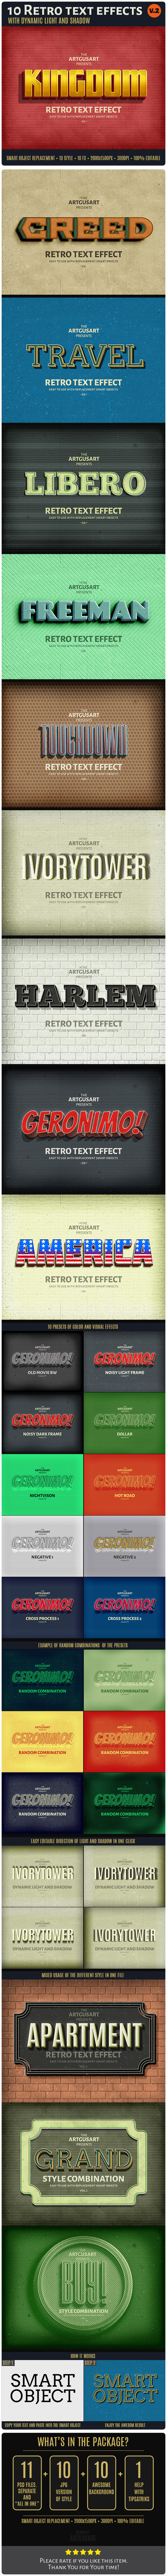 10 Retro Text Effect v.2 - Text Effects Actions